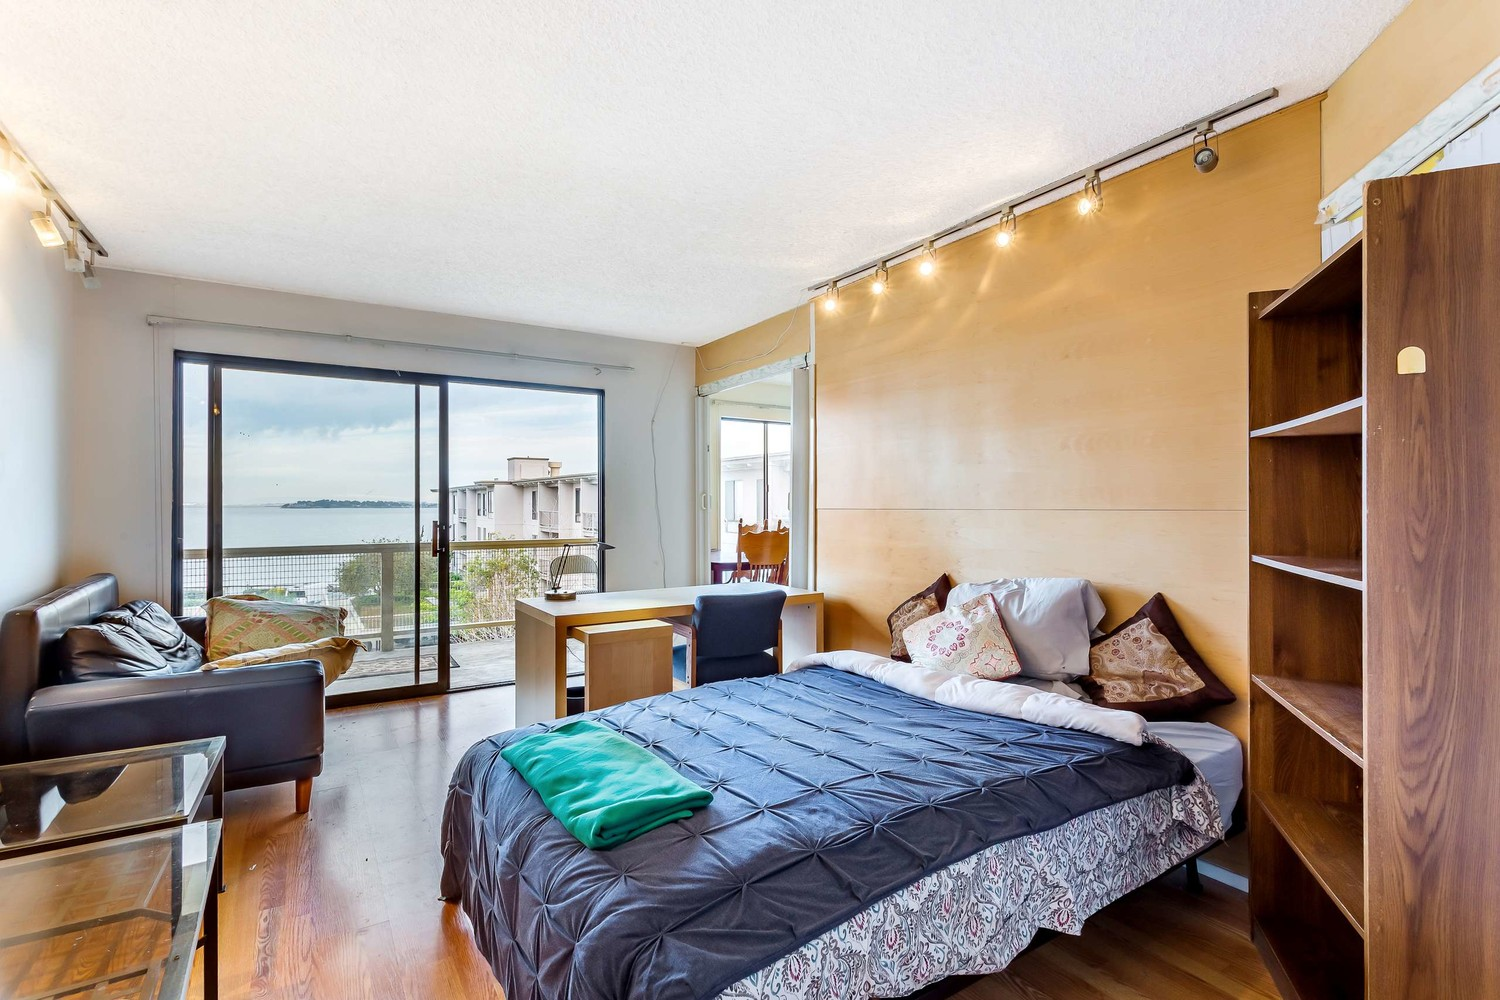 $1 mln view rooms for rent